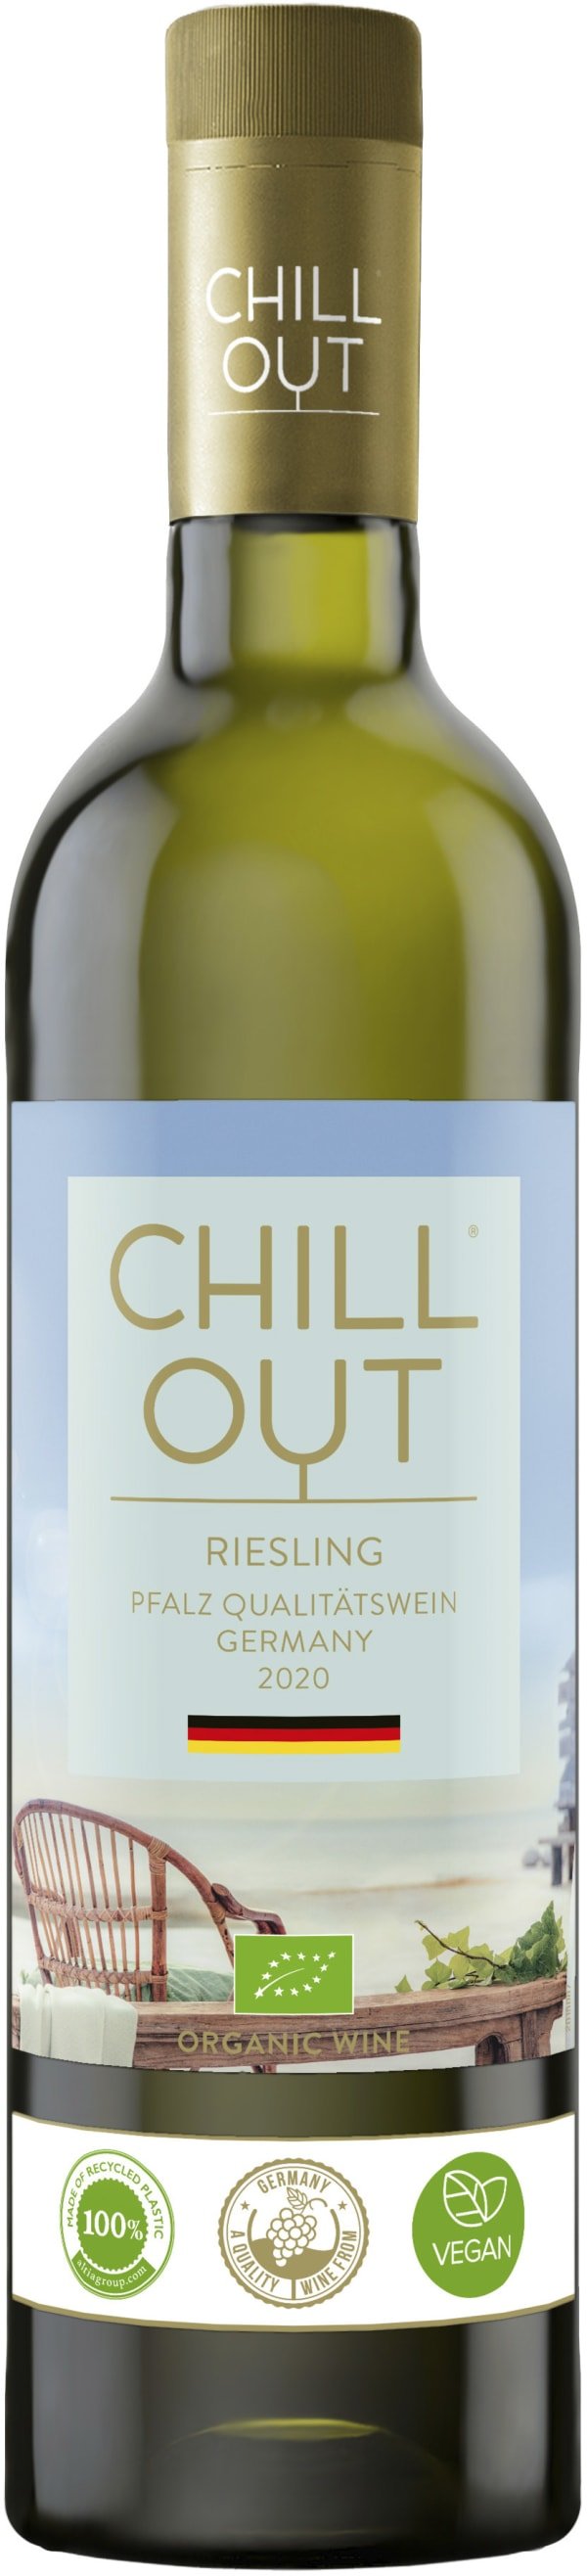 Chill Out Crisp & Fruity Riesling Organic 2016 plastic bottle